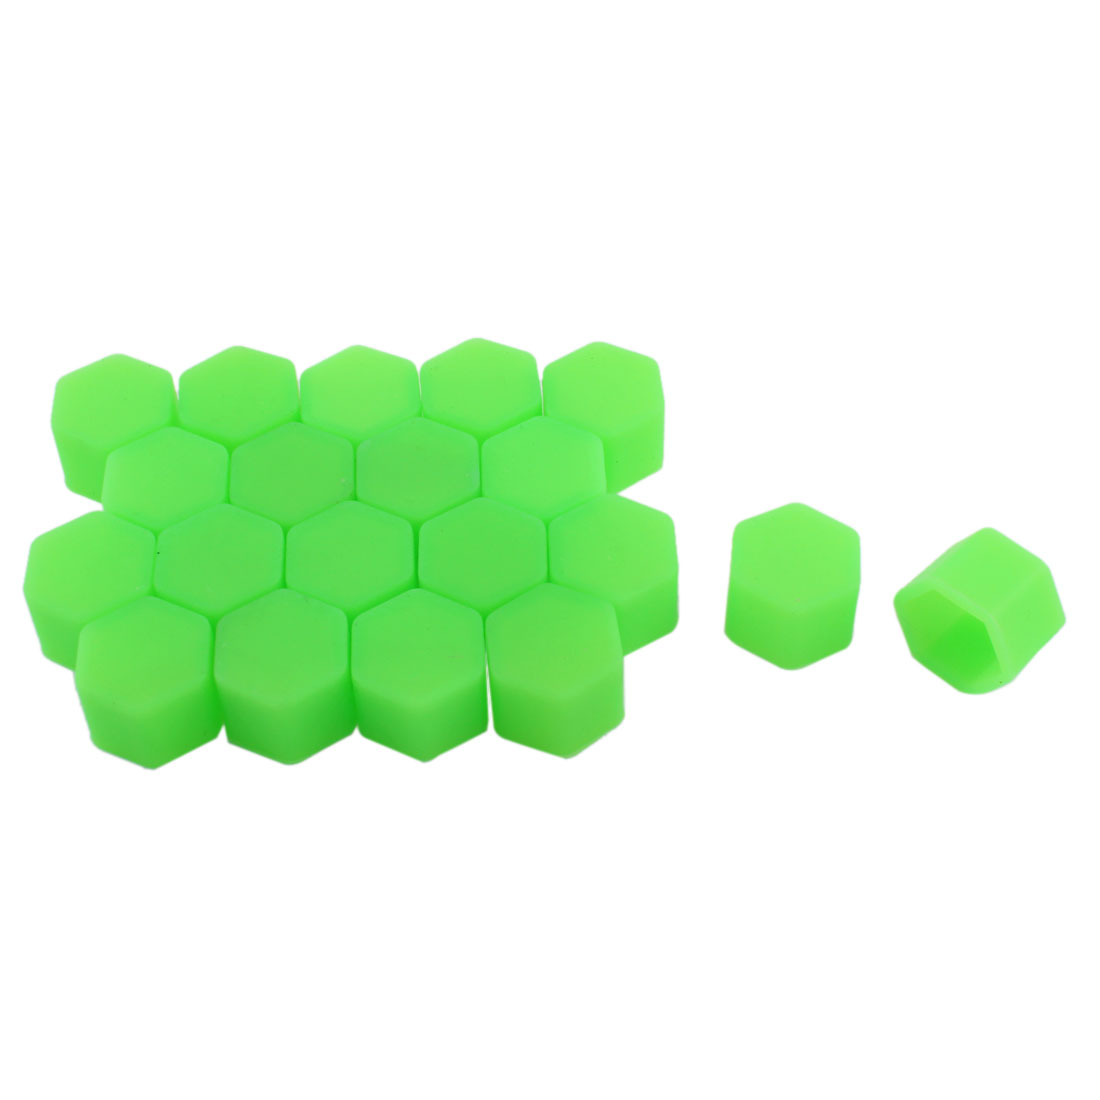 20 Pcs Green Silicone Car Wheel Lugs Nuts Bolts Covers Hub Tyres Screw Dust Caps